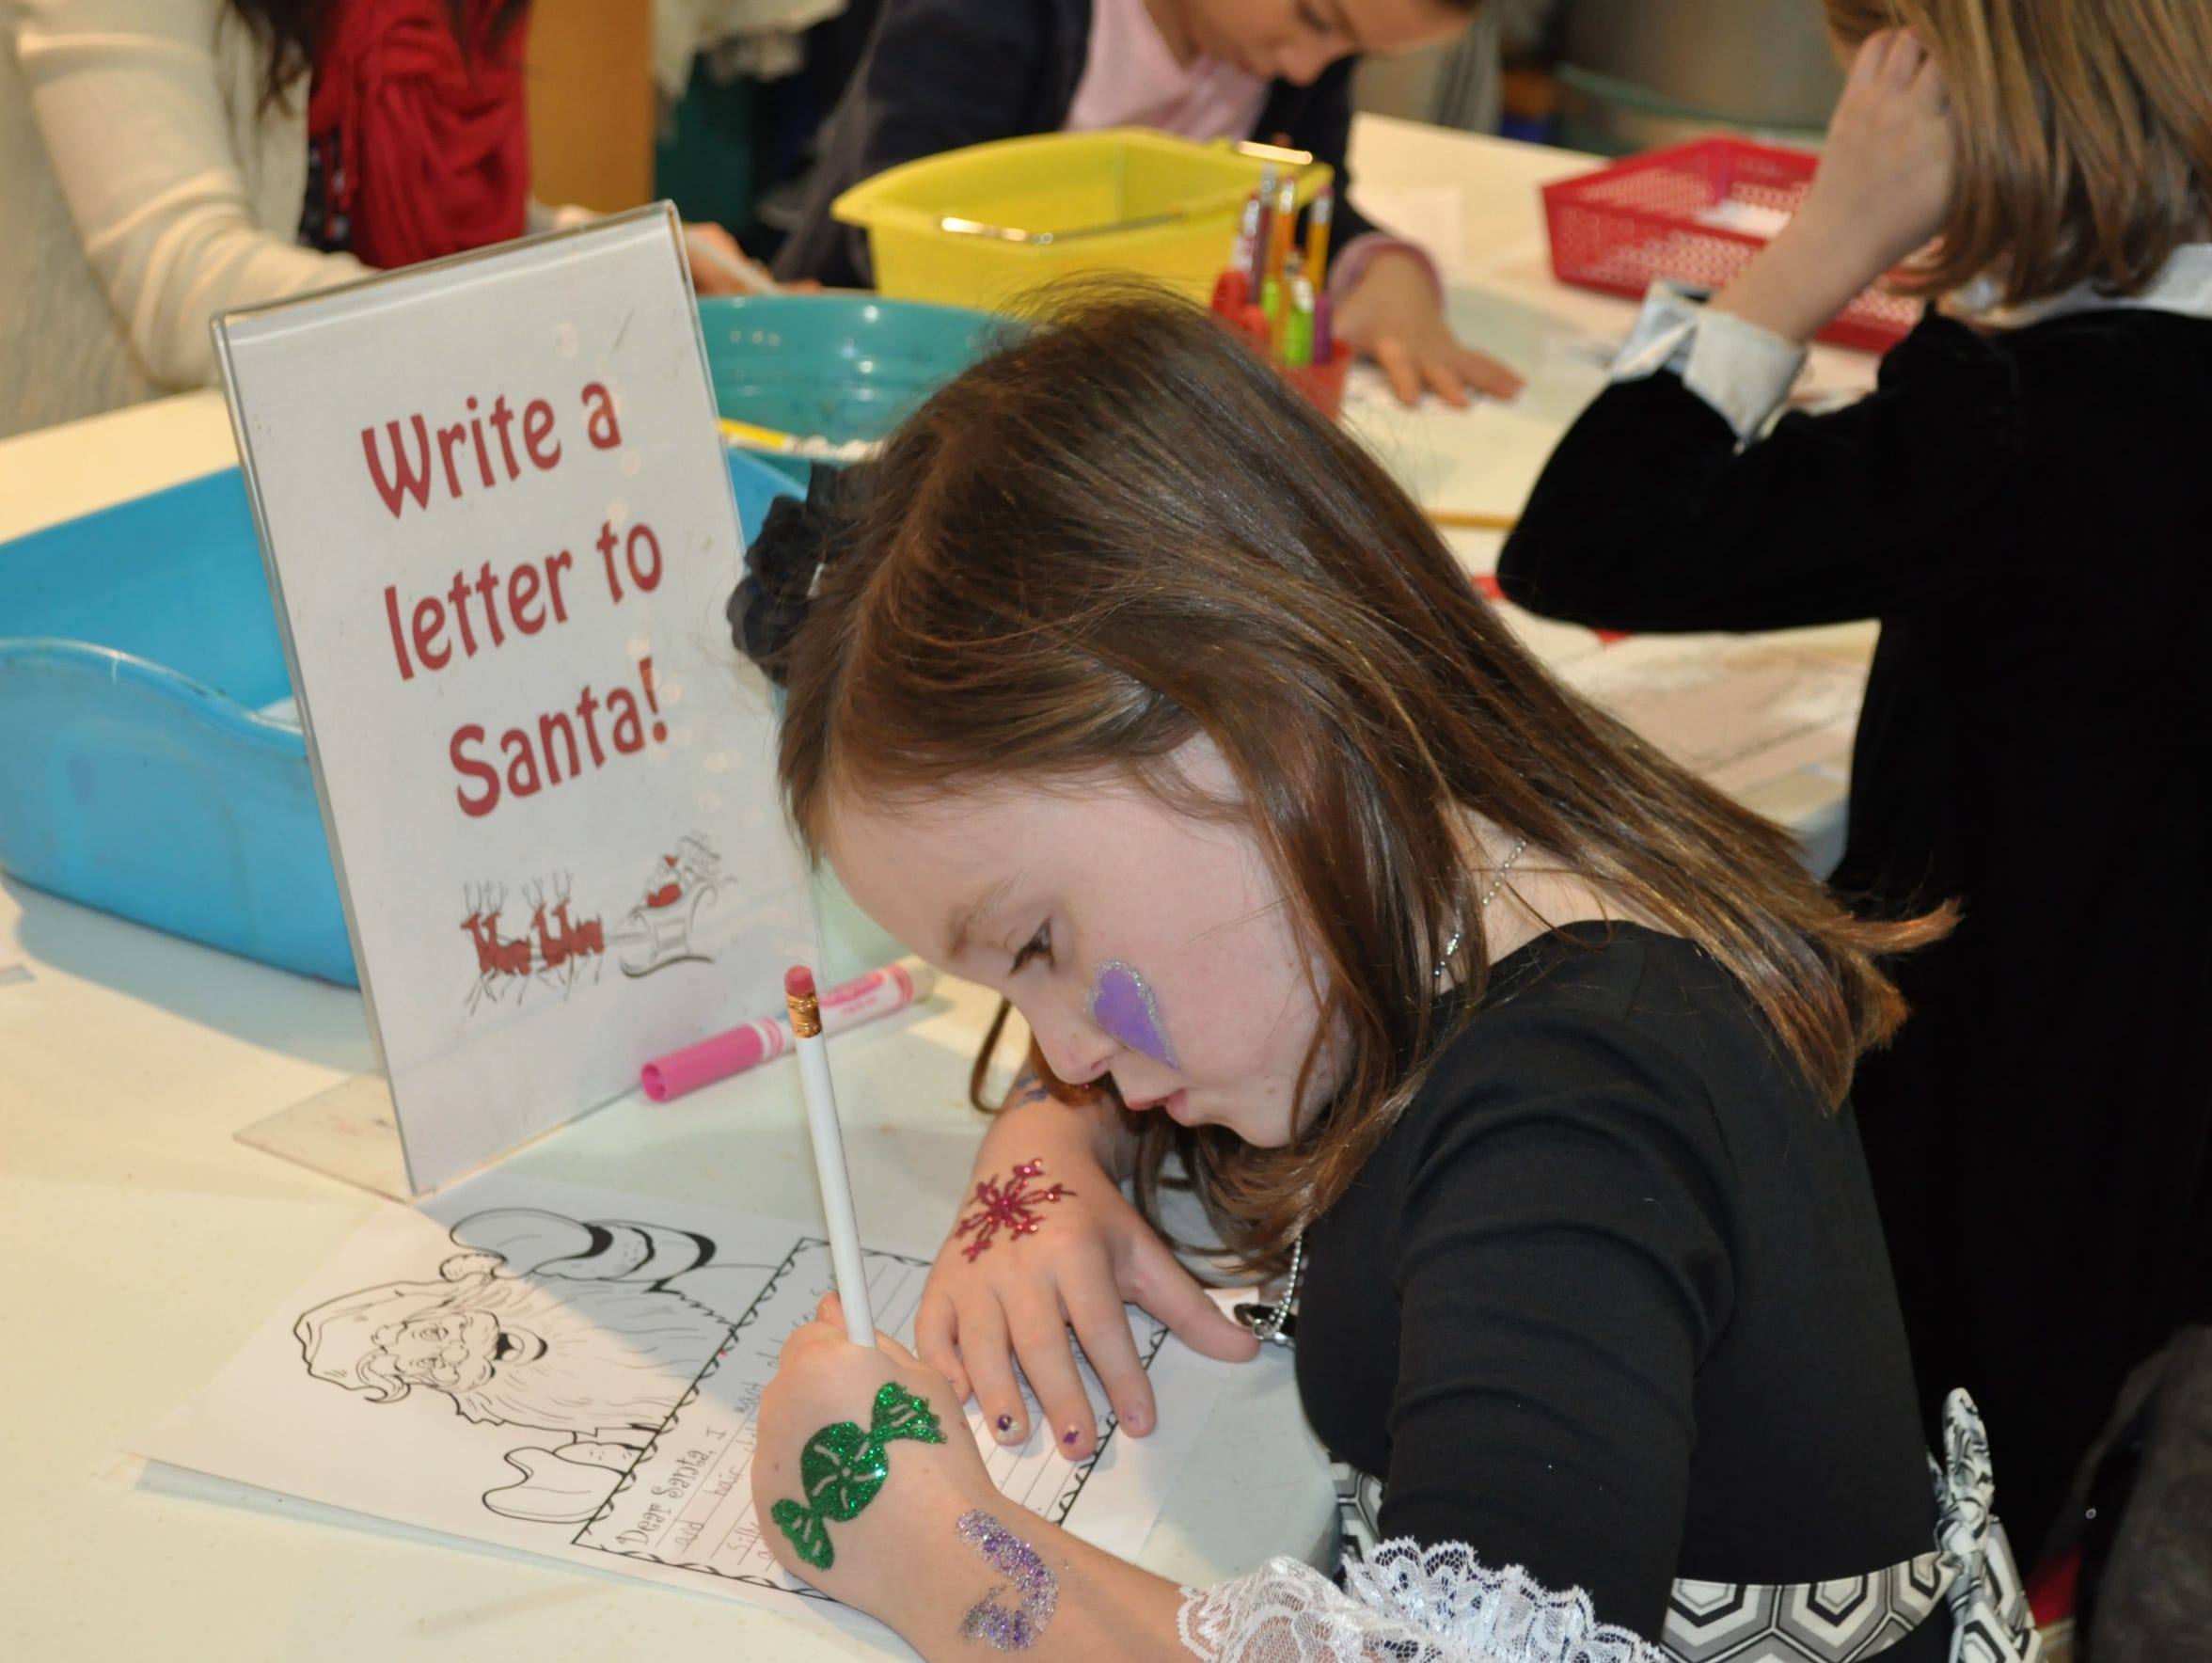 Kids can enjoy all sorts of holiday activities at the